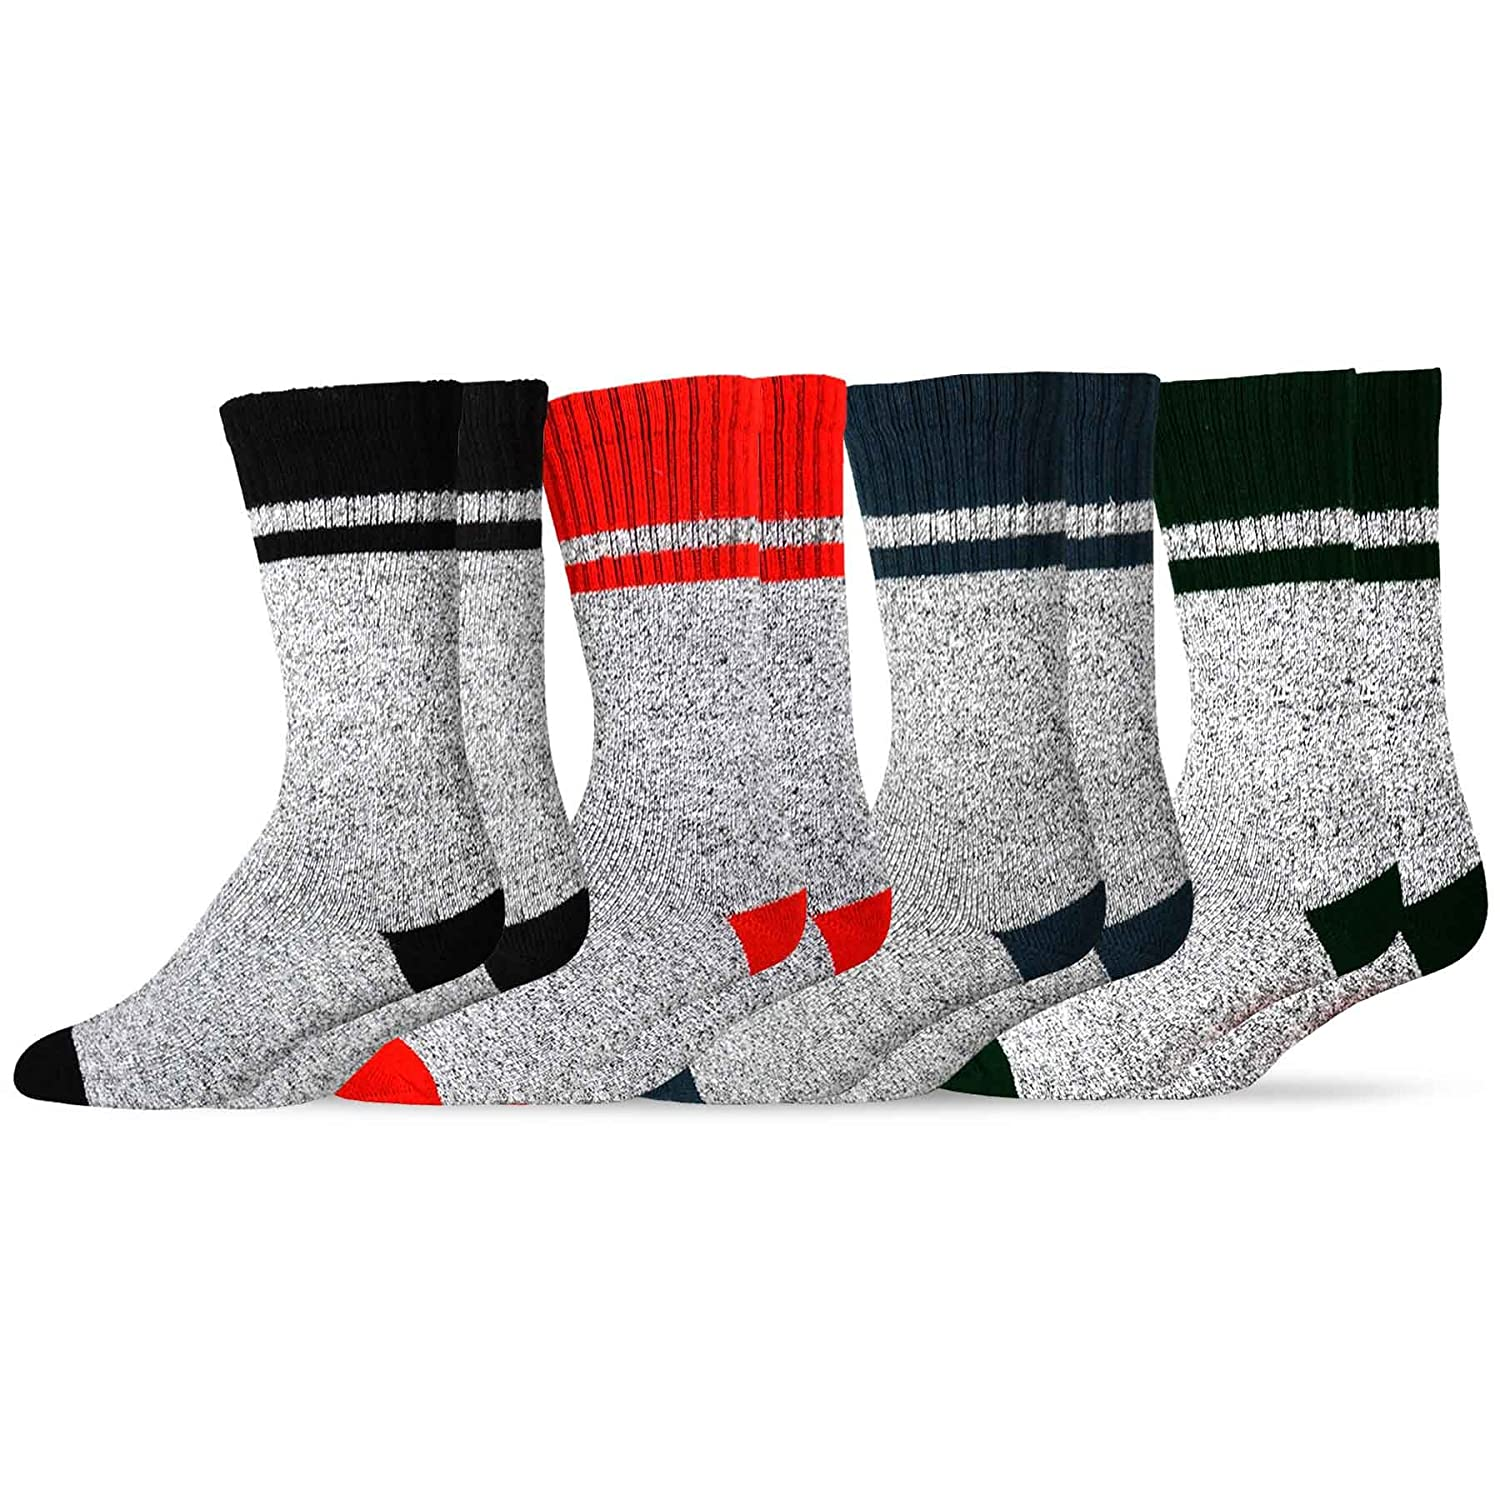 Soxnet Eco Friendly Heavy Weight Recyled Cotton Thermals Boot Socks 4 Pairs Soxnet Inc